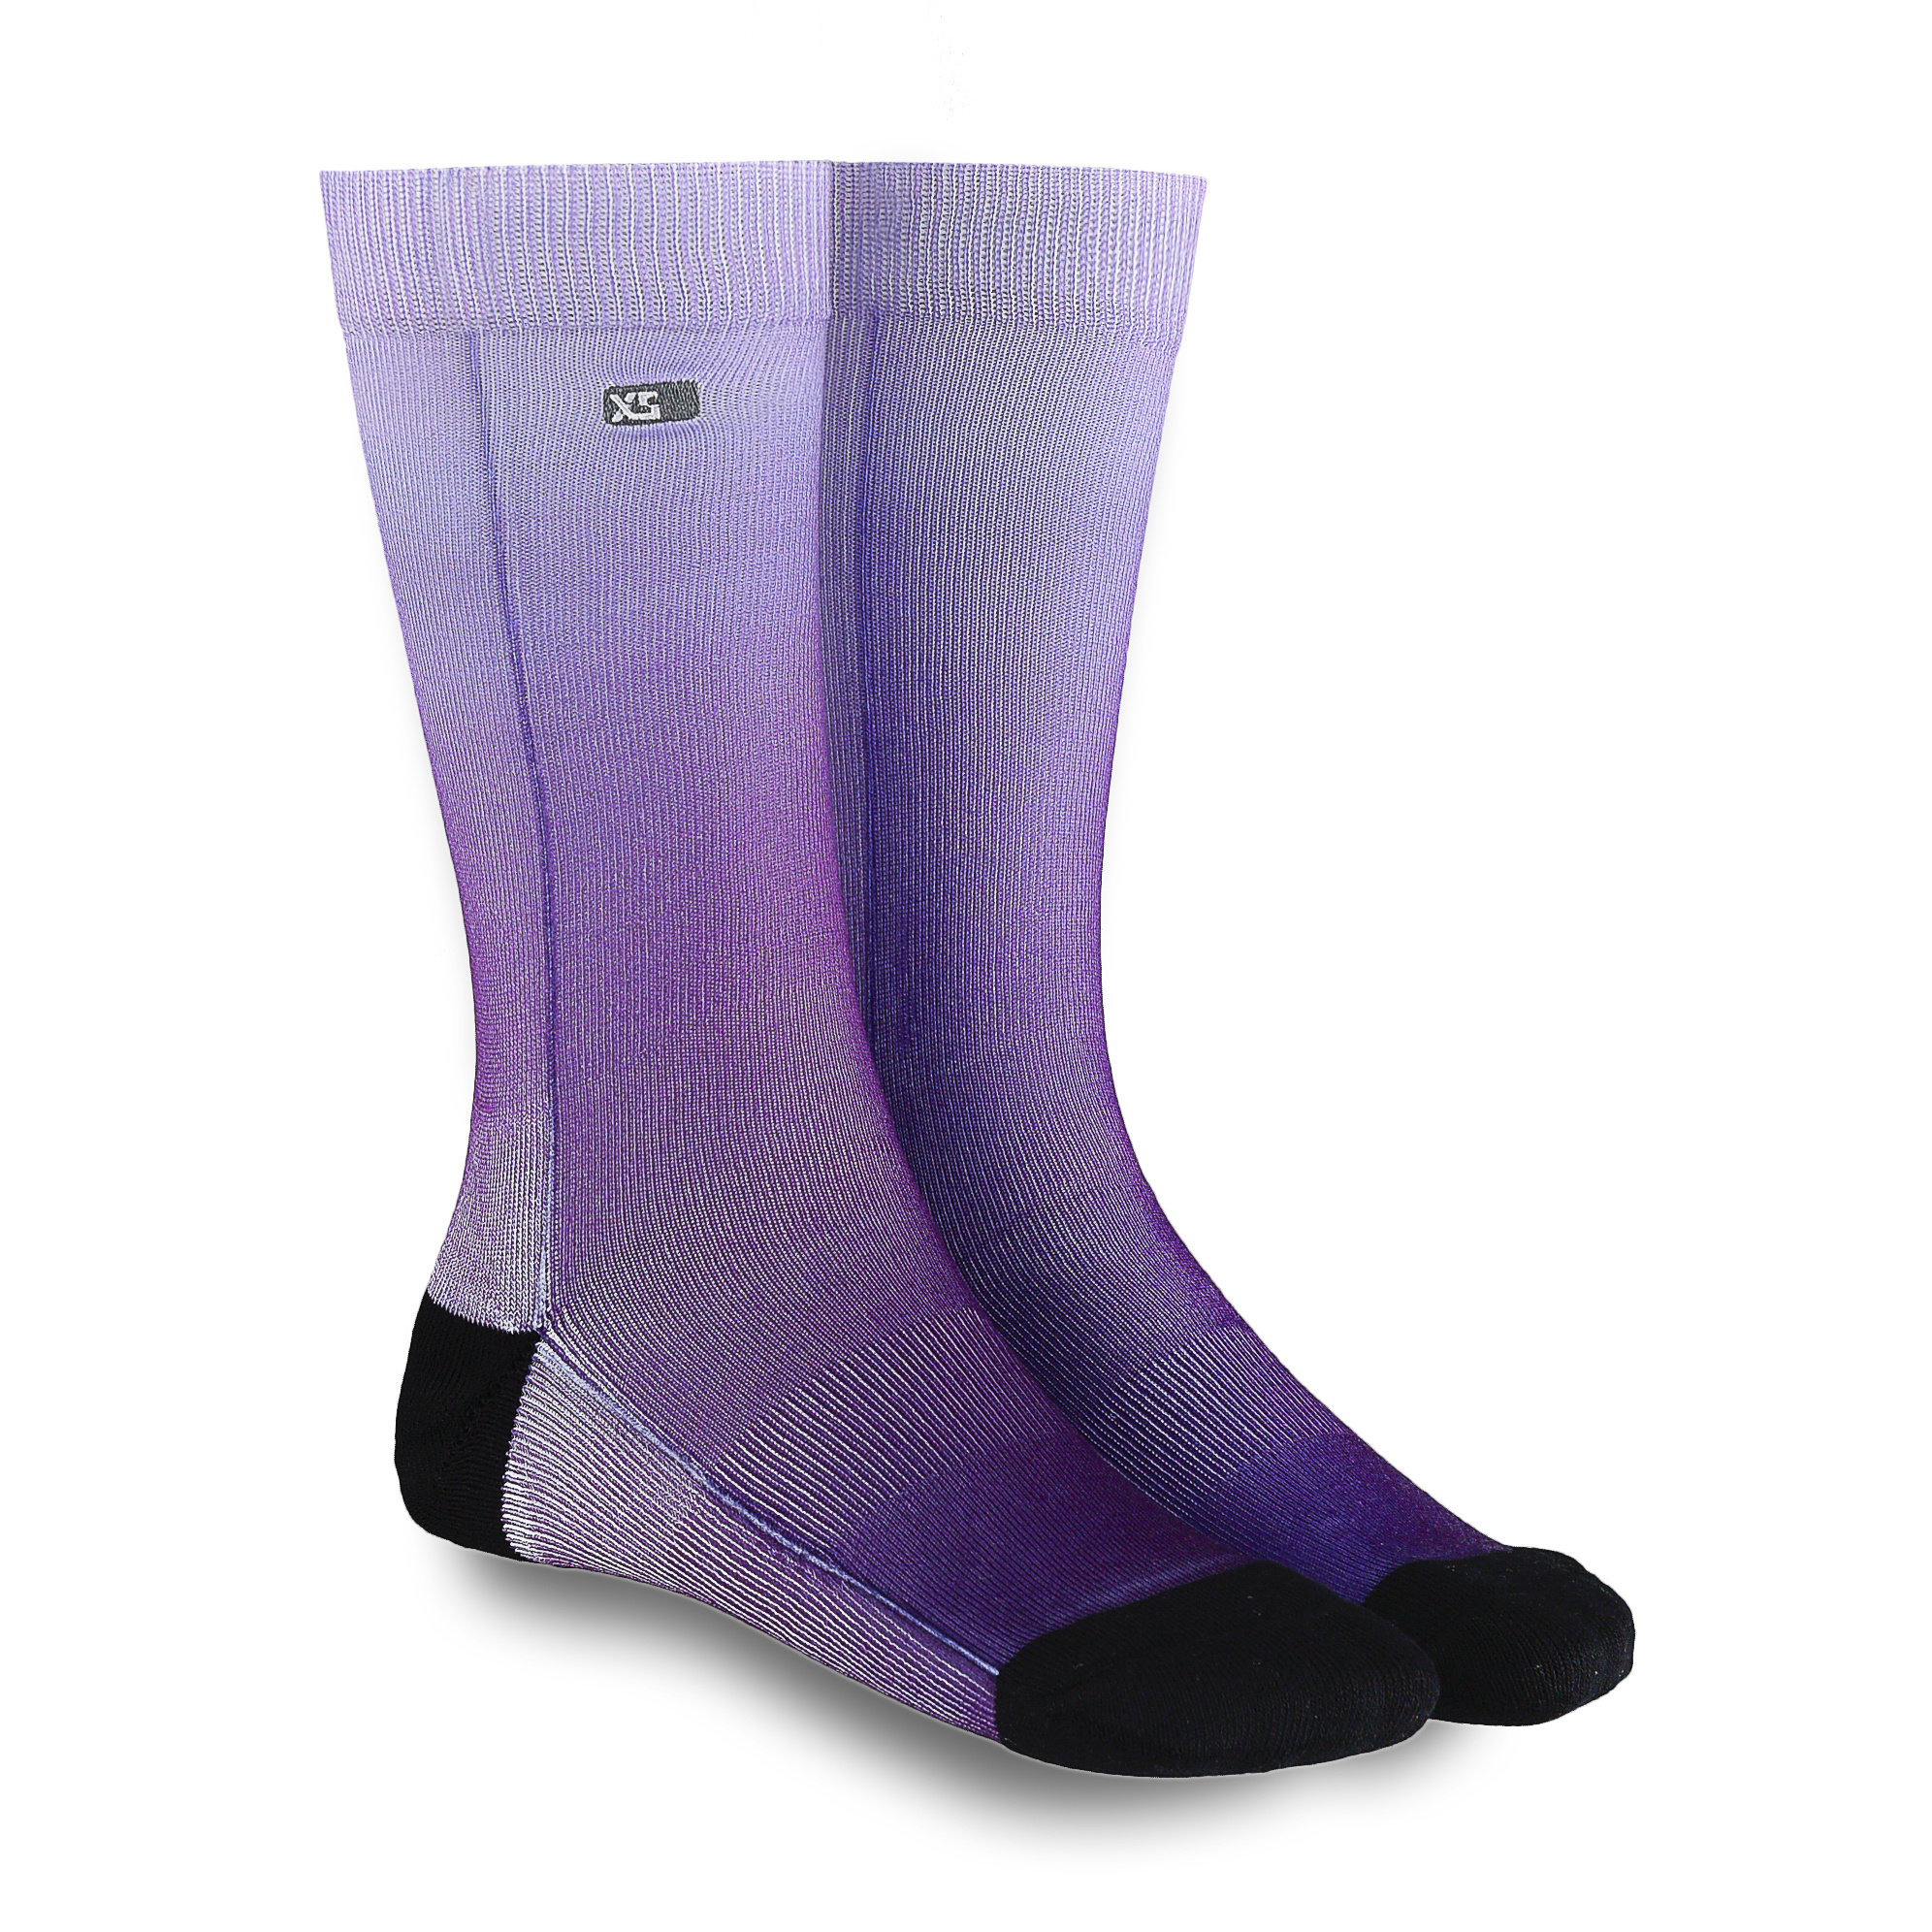 XS Unified XS Unified Women's 6-10 Ombre Mid Calf